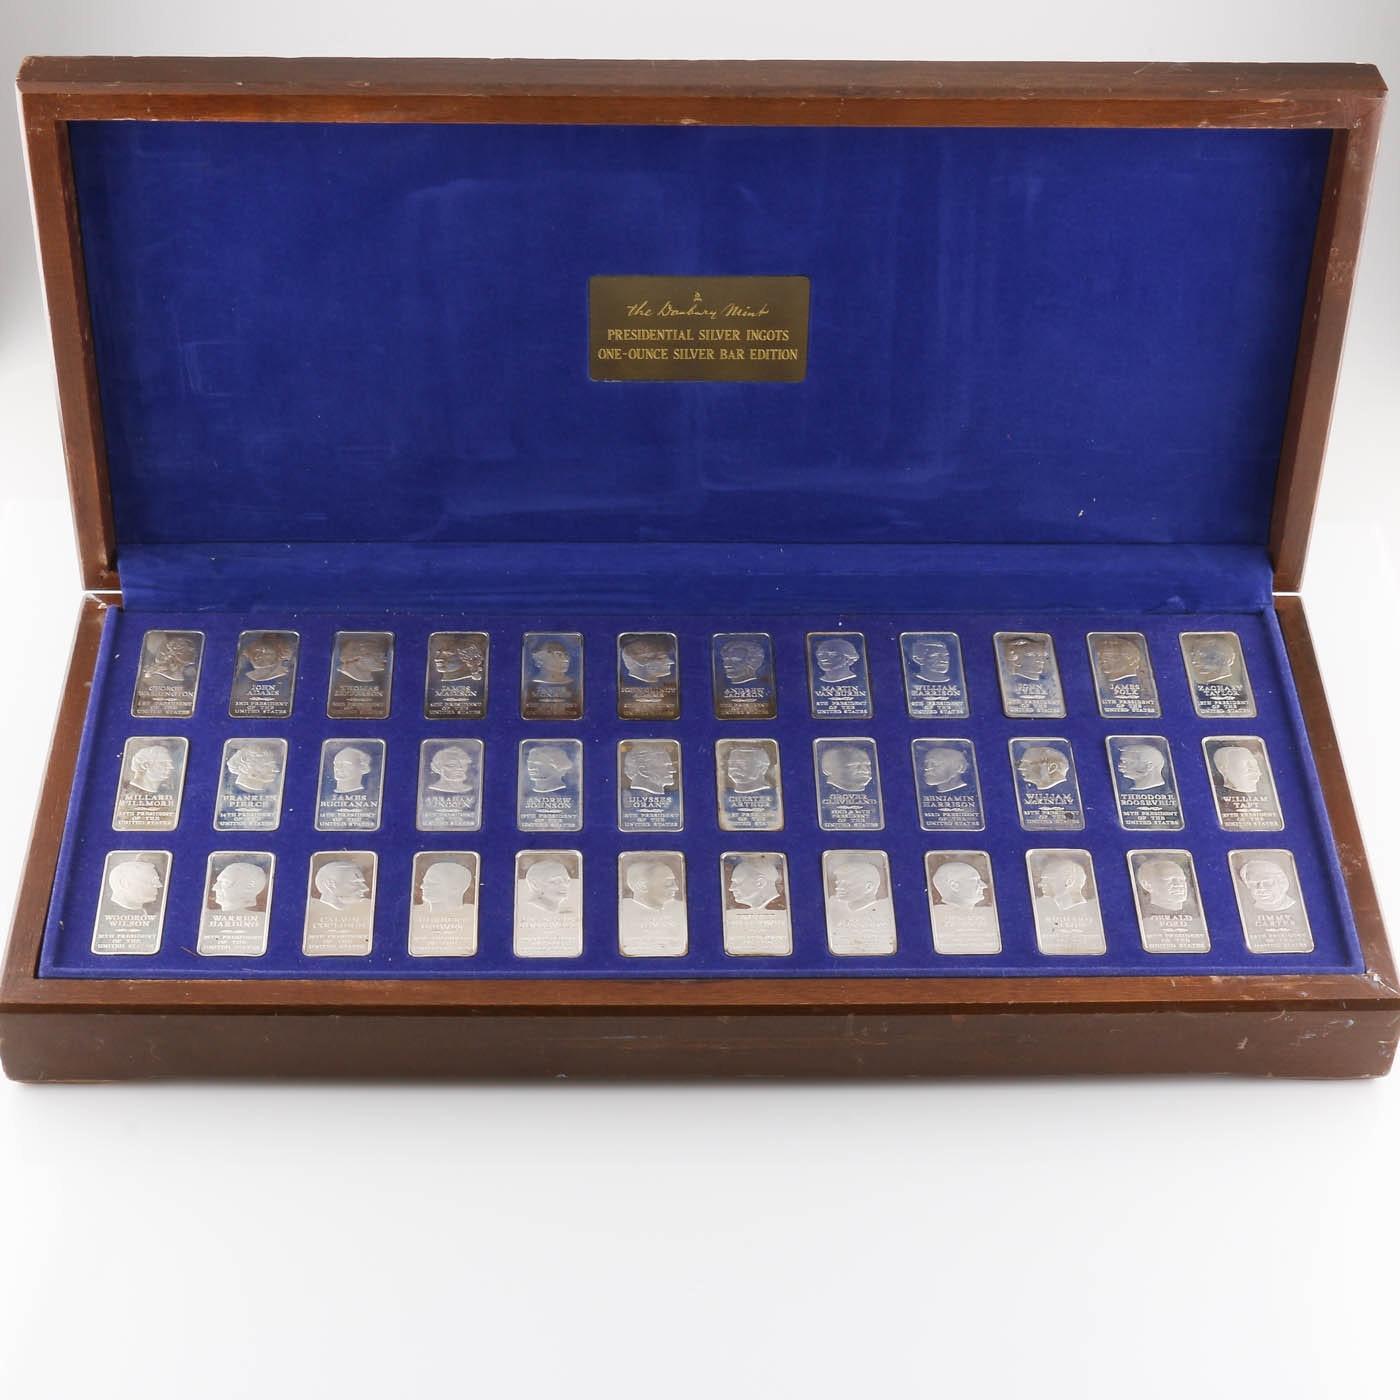 Danbury Mint Presidential Silver Ingots Collection